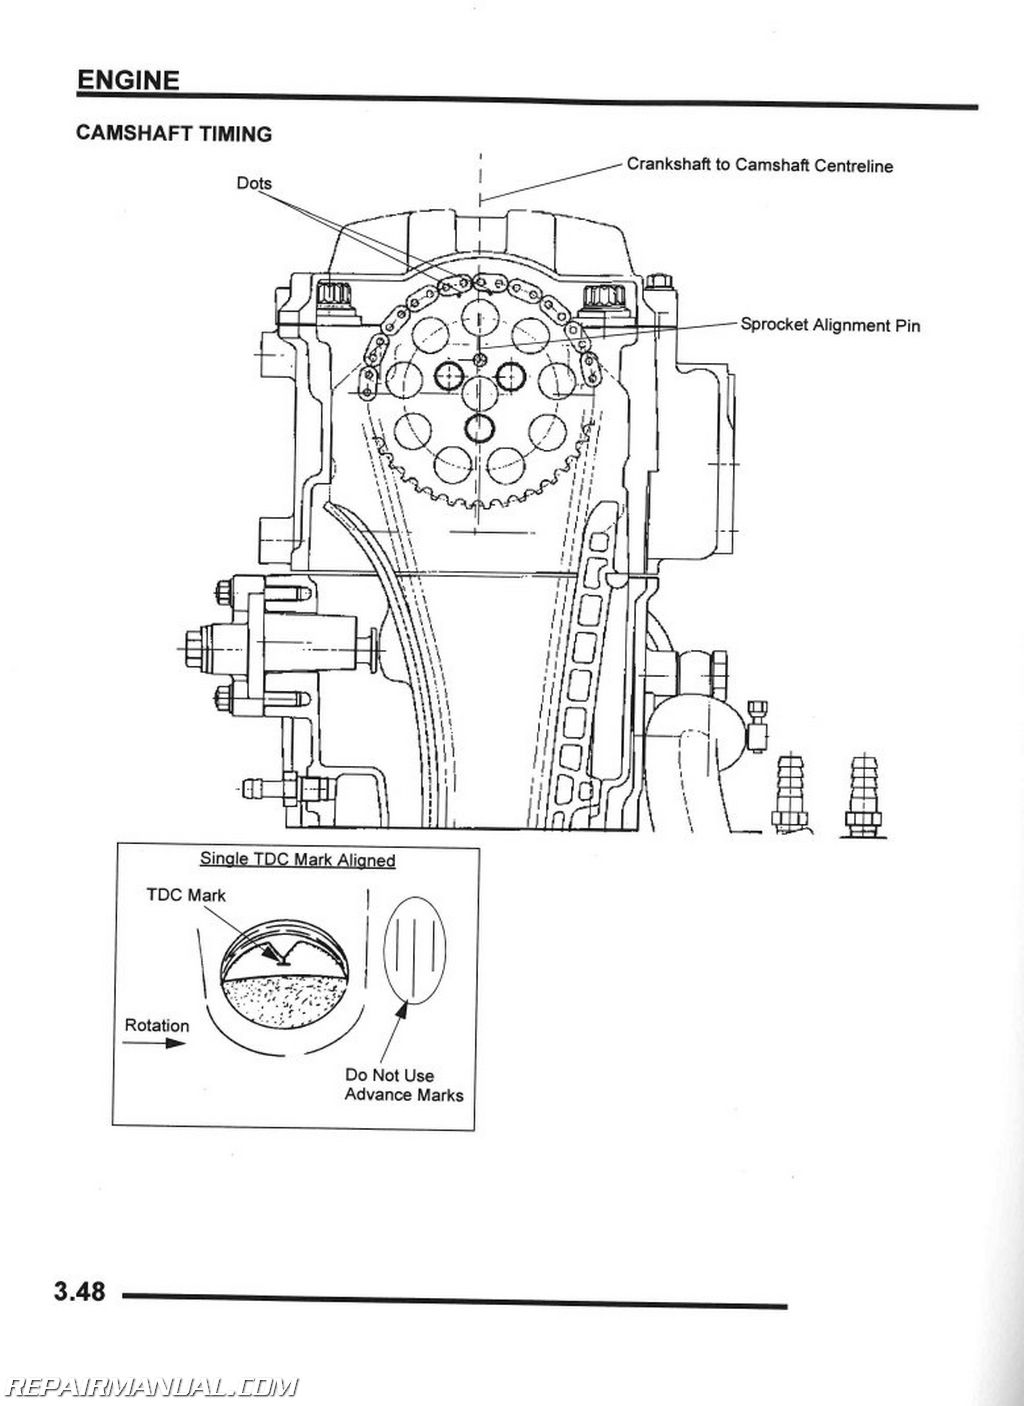 2008 Polaris Sportsman 500 Wiring Diagram. Engine. Wiring